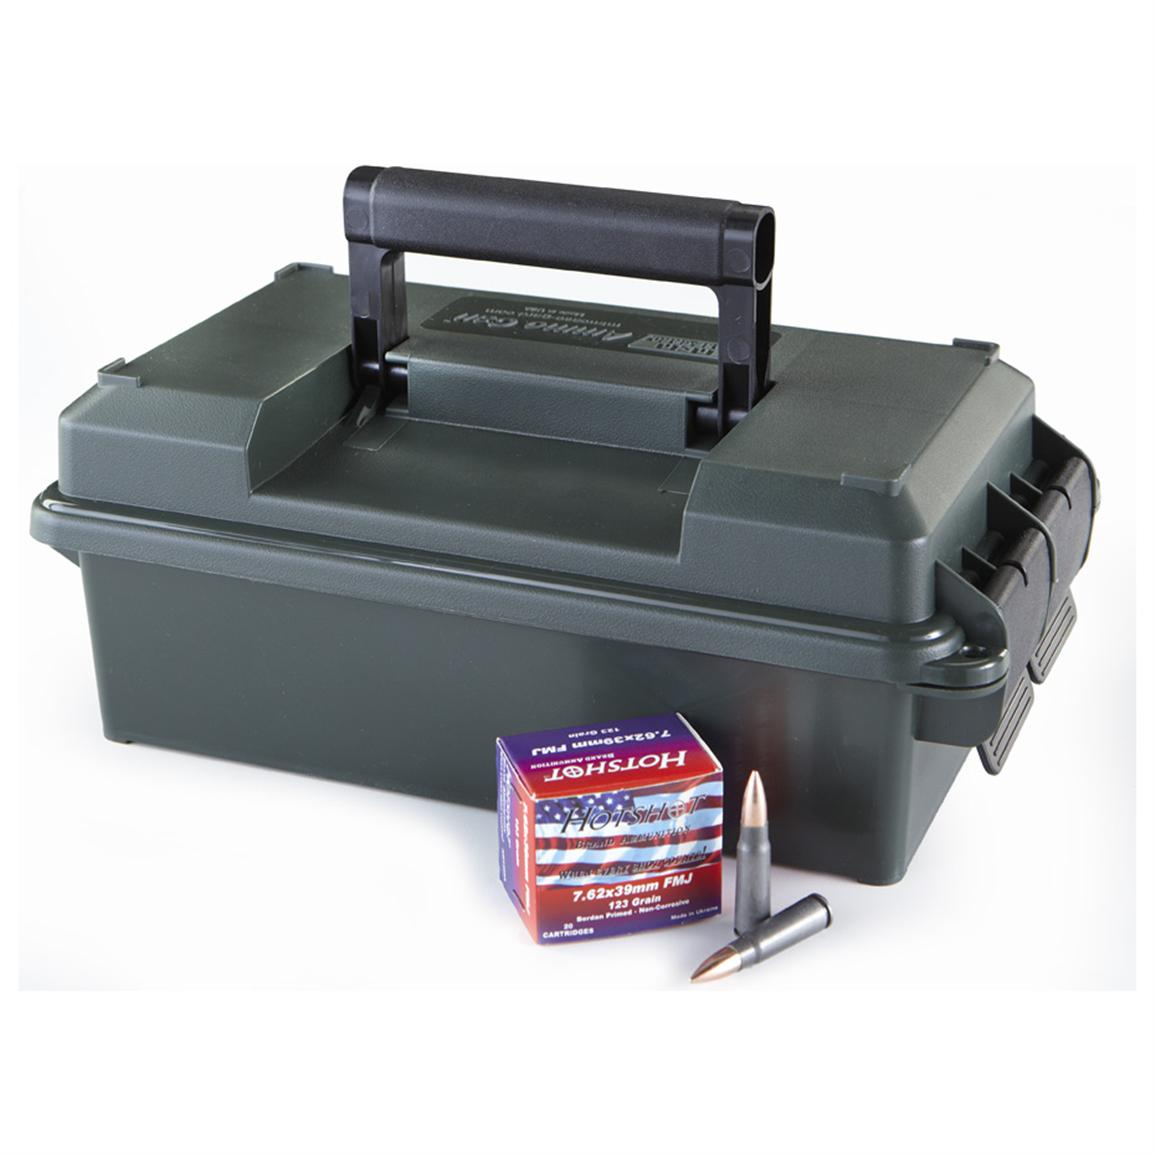 200 rounds HotShot® 7.62x39mm 123 Grain FMJ Ammo in .30 Cal. Ammo Can